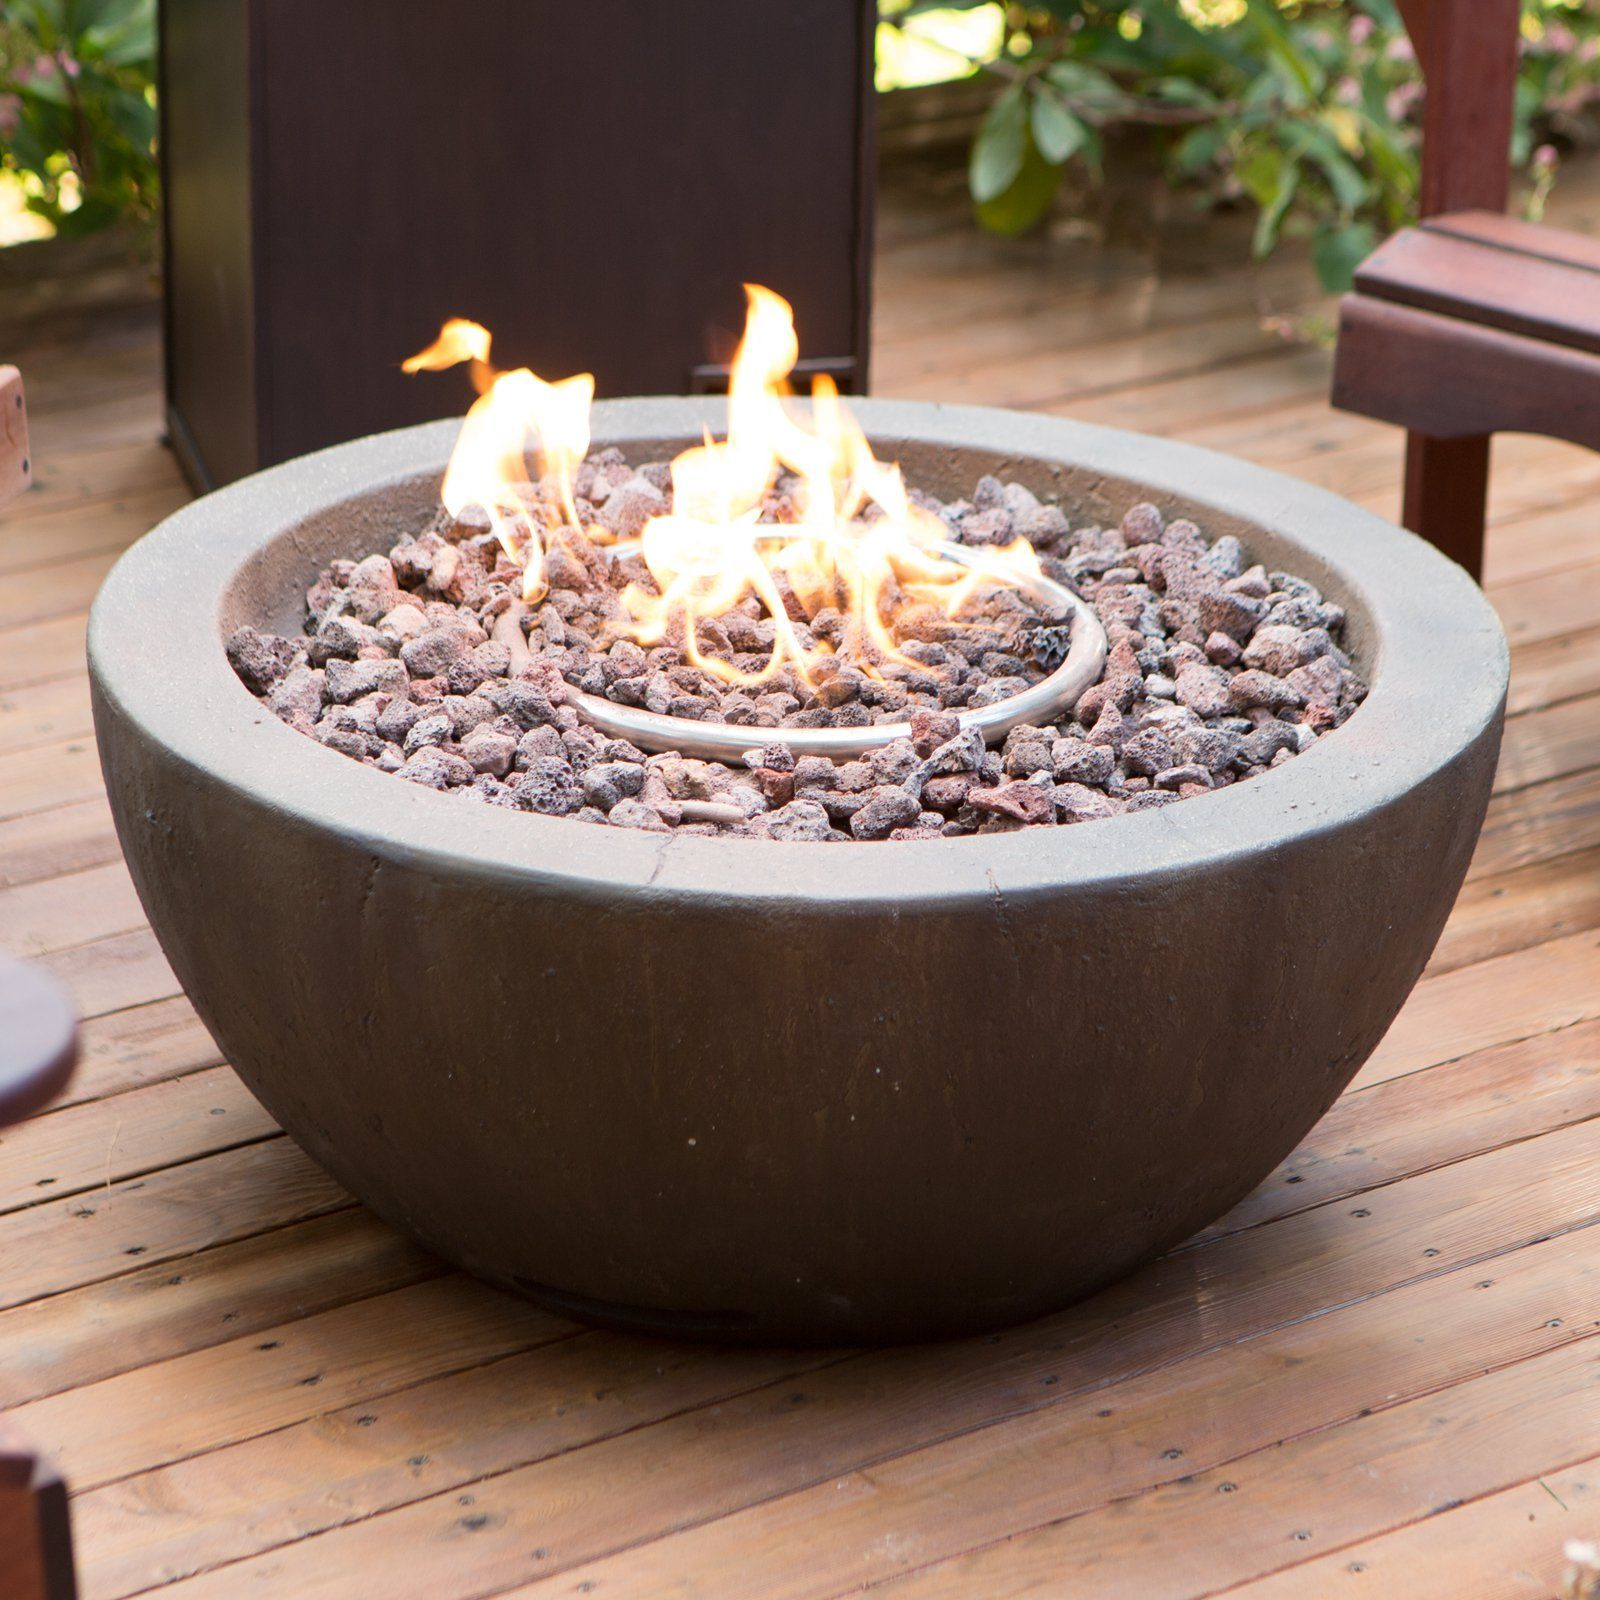 Free 2 Day Shipping Buy Red Ember Mesa 28 Diam Fire Bowl With Free Cover At Walmart Com Bowl Cove In 2020 Propan Feuerstellen Beton Feuerstellen Feuerstelle Garten